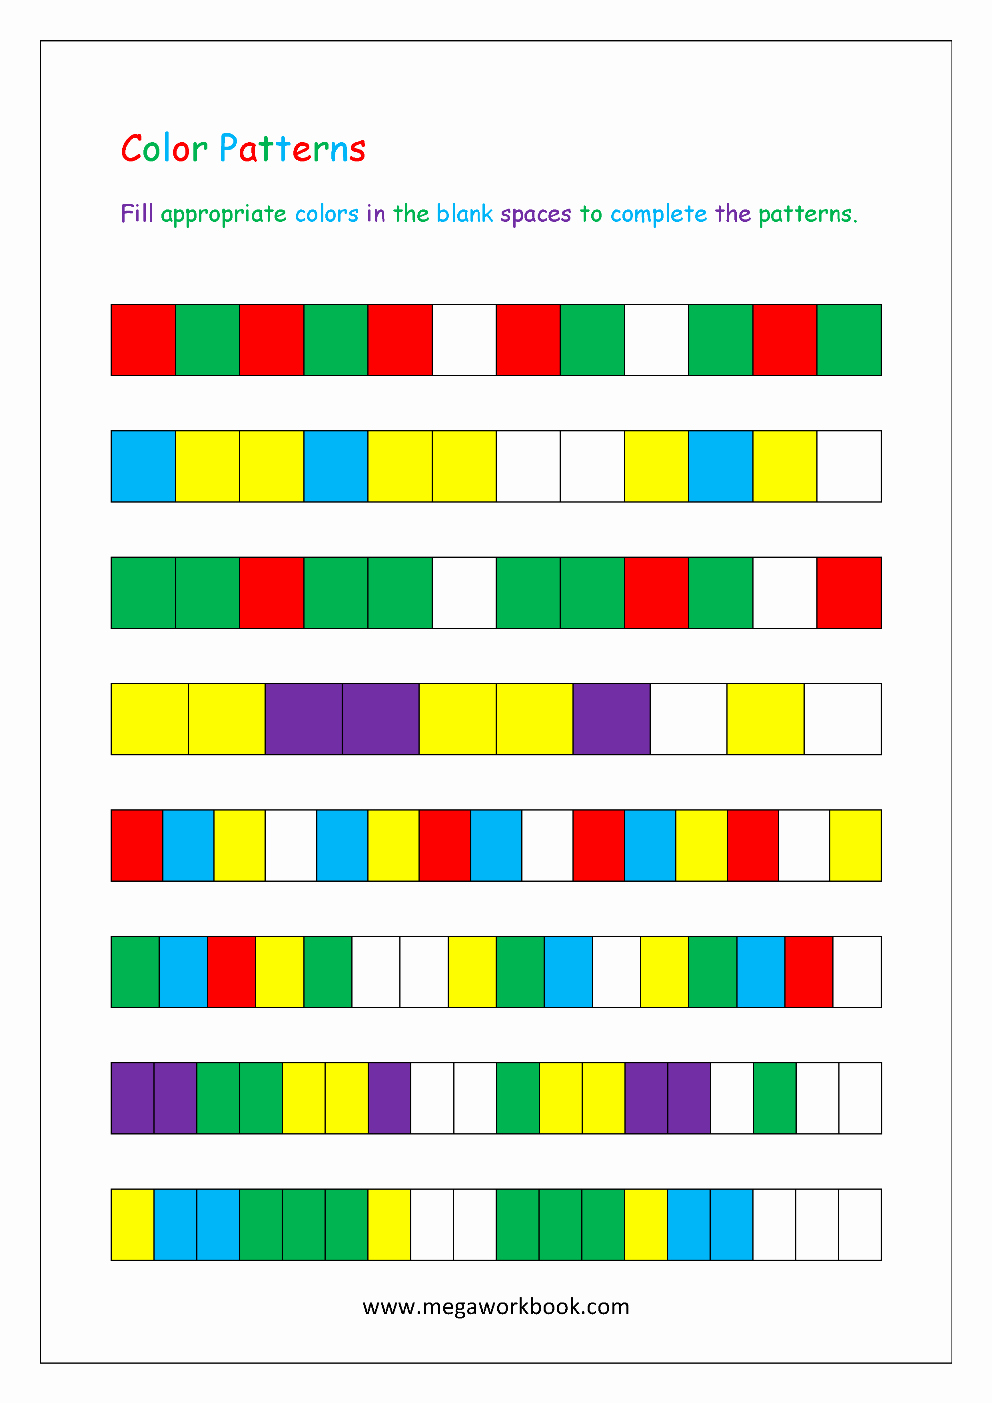 Repeated Pattern Worksheets Awesome Pattern Worksheets for Kindergarten Color Patterns